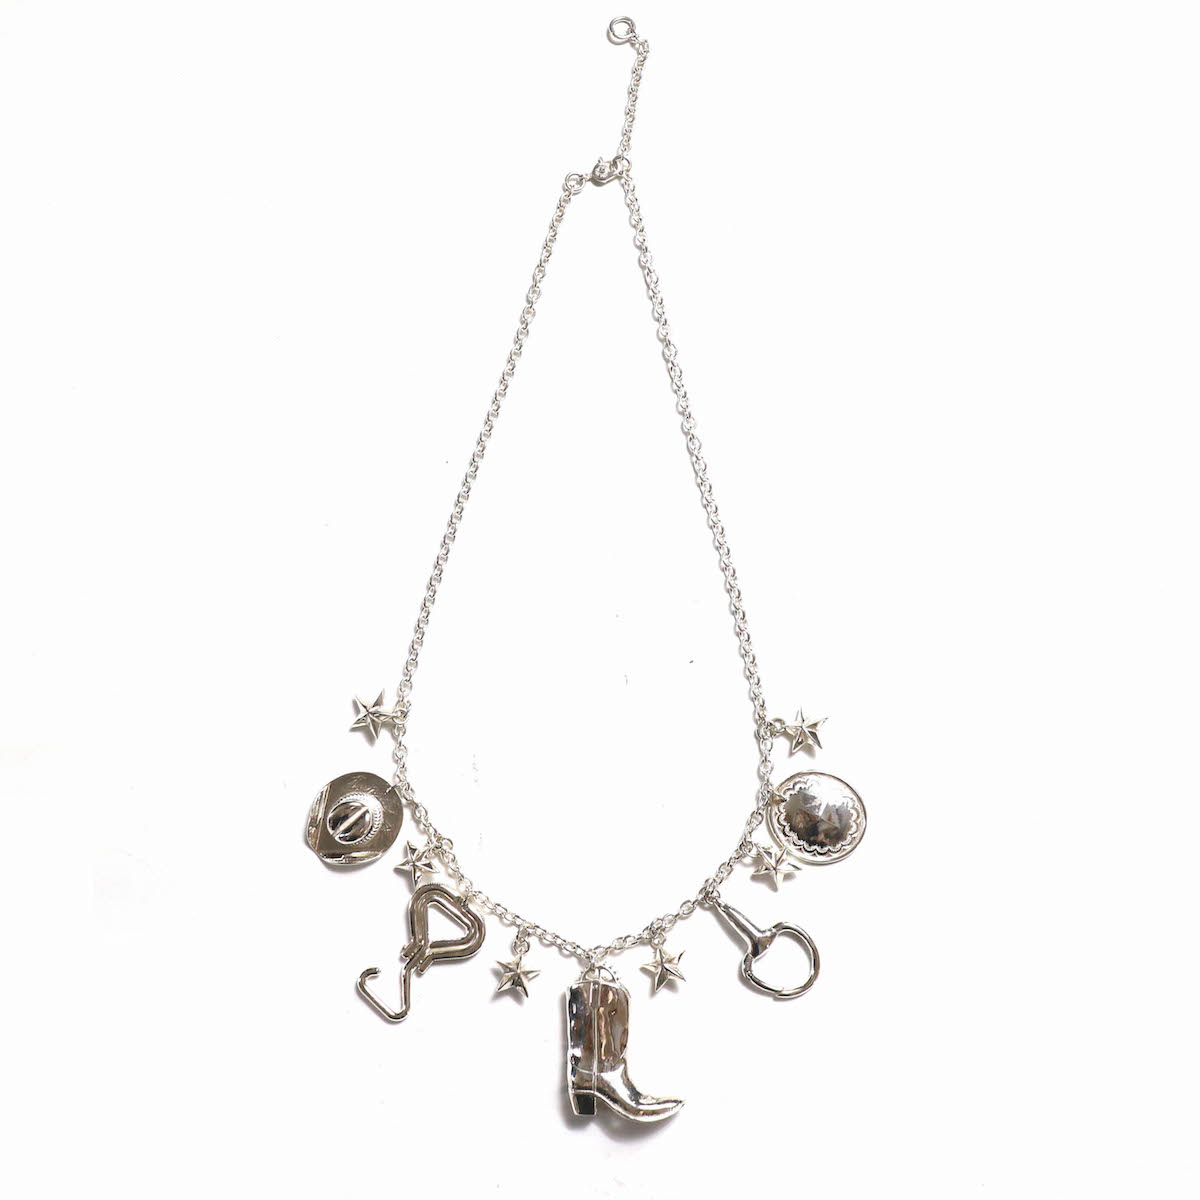 【20%OFF】END / western necklace